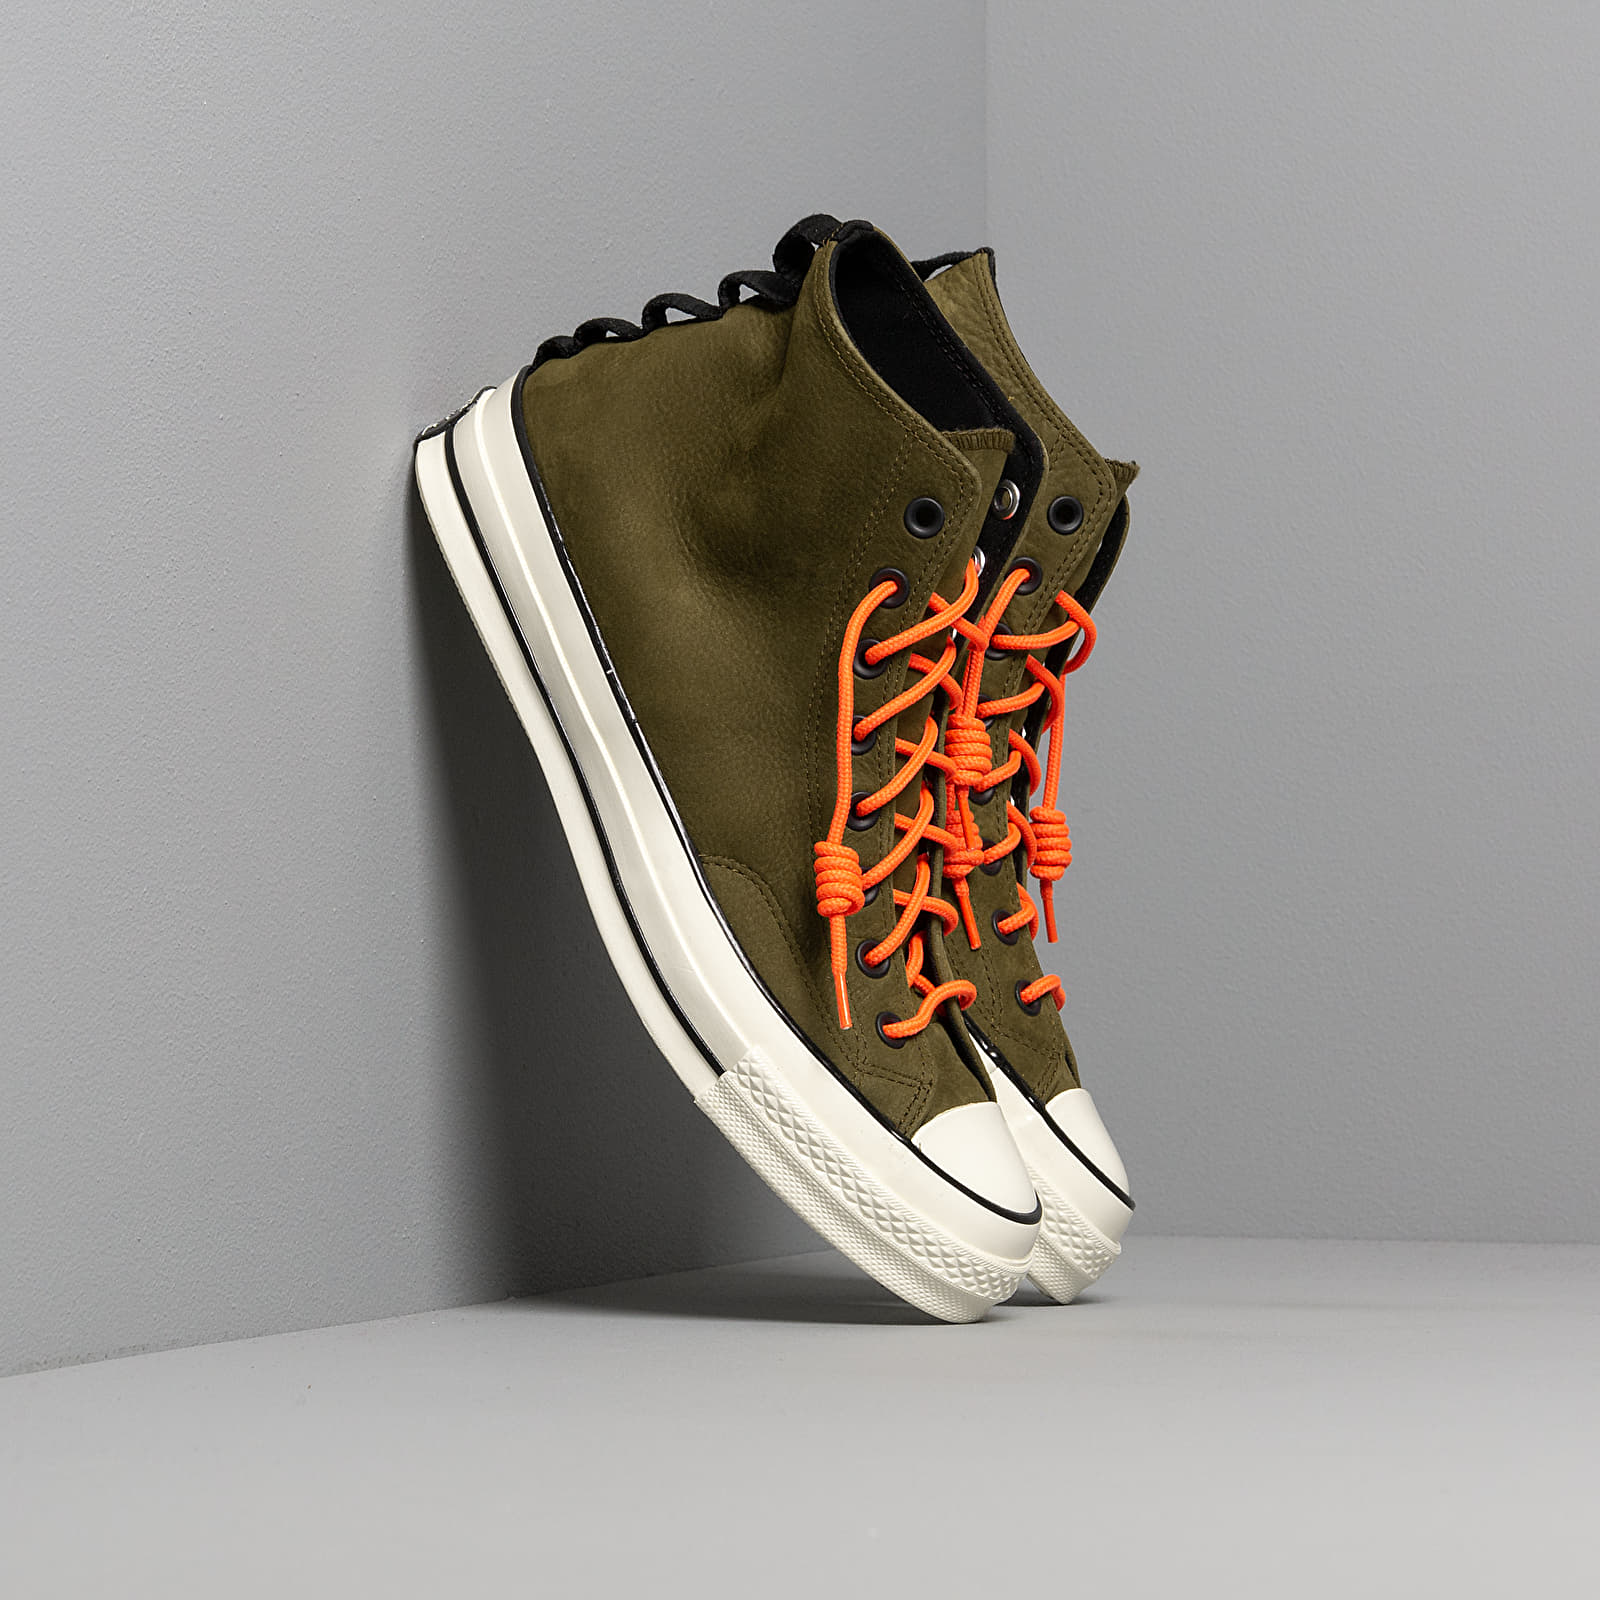 Converse Chuck 70 Sp Nubuck Leather